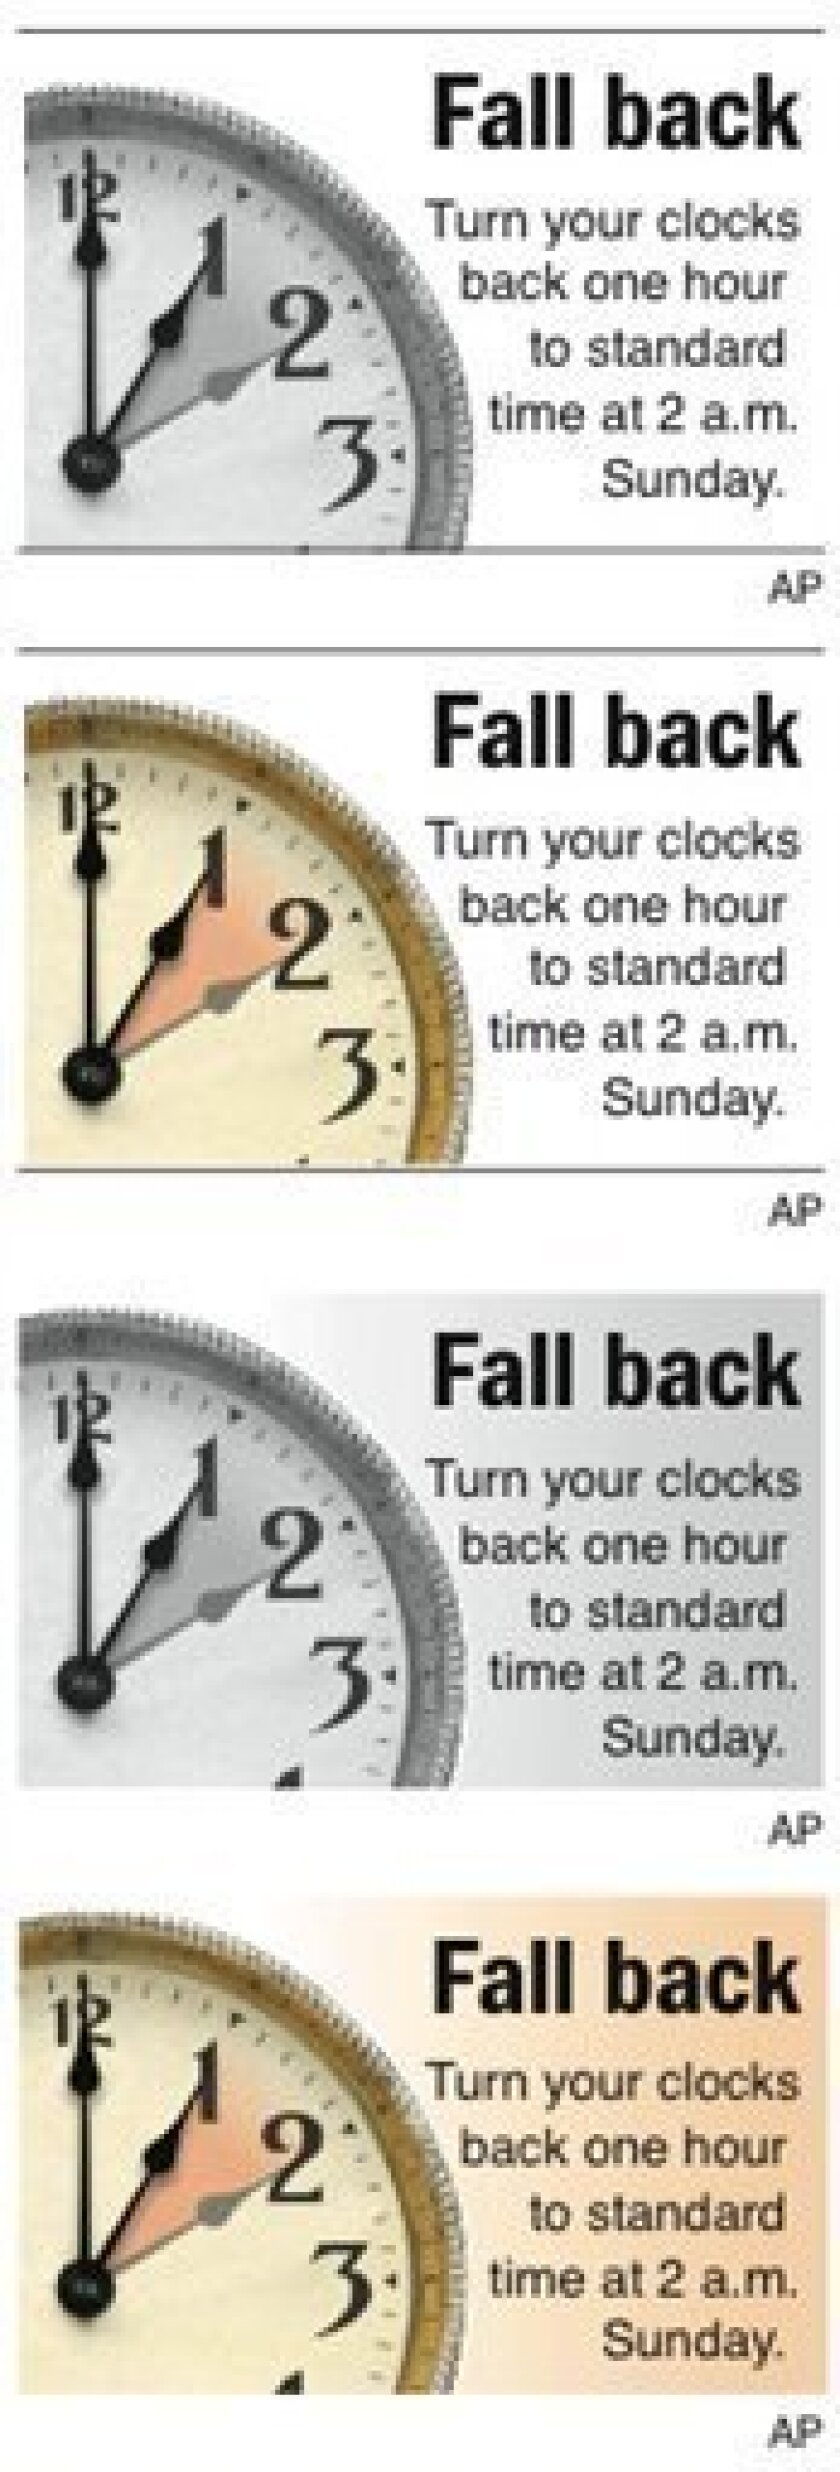 Graphic reminder to turn clocks back one hour from 2 a.m. to 1 a.m. on Sunday, Nov. 2; stand-alone; three sizes